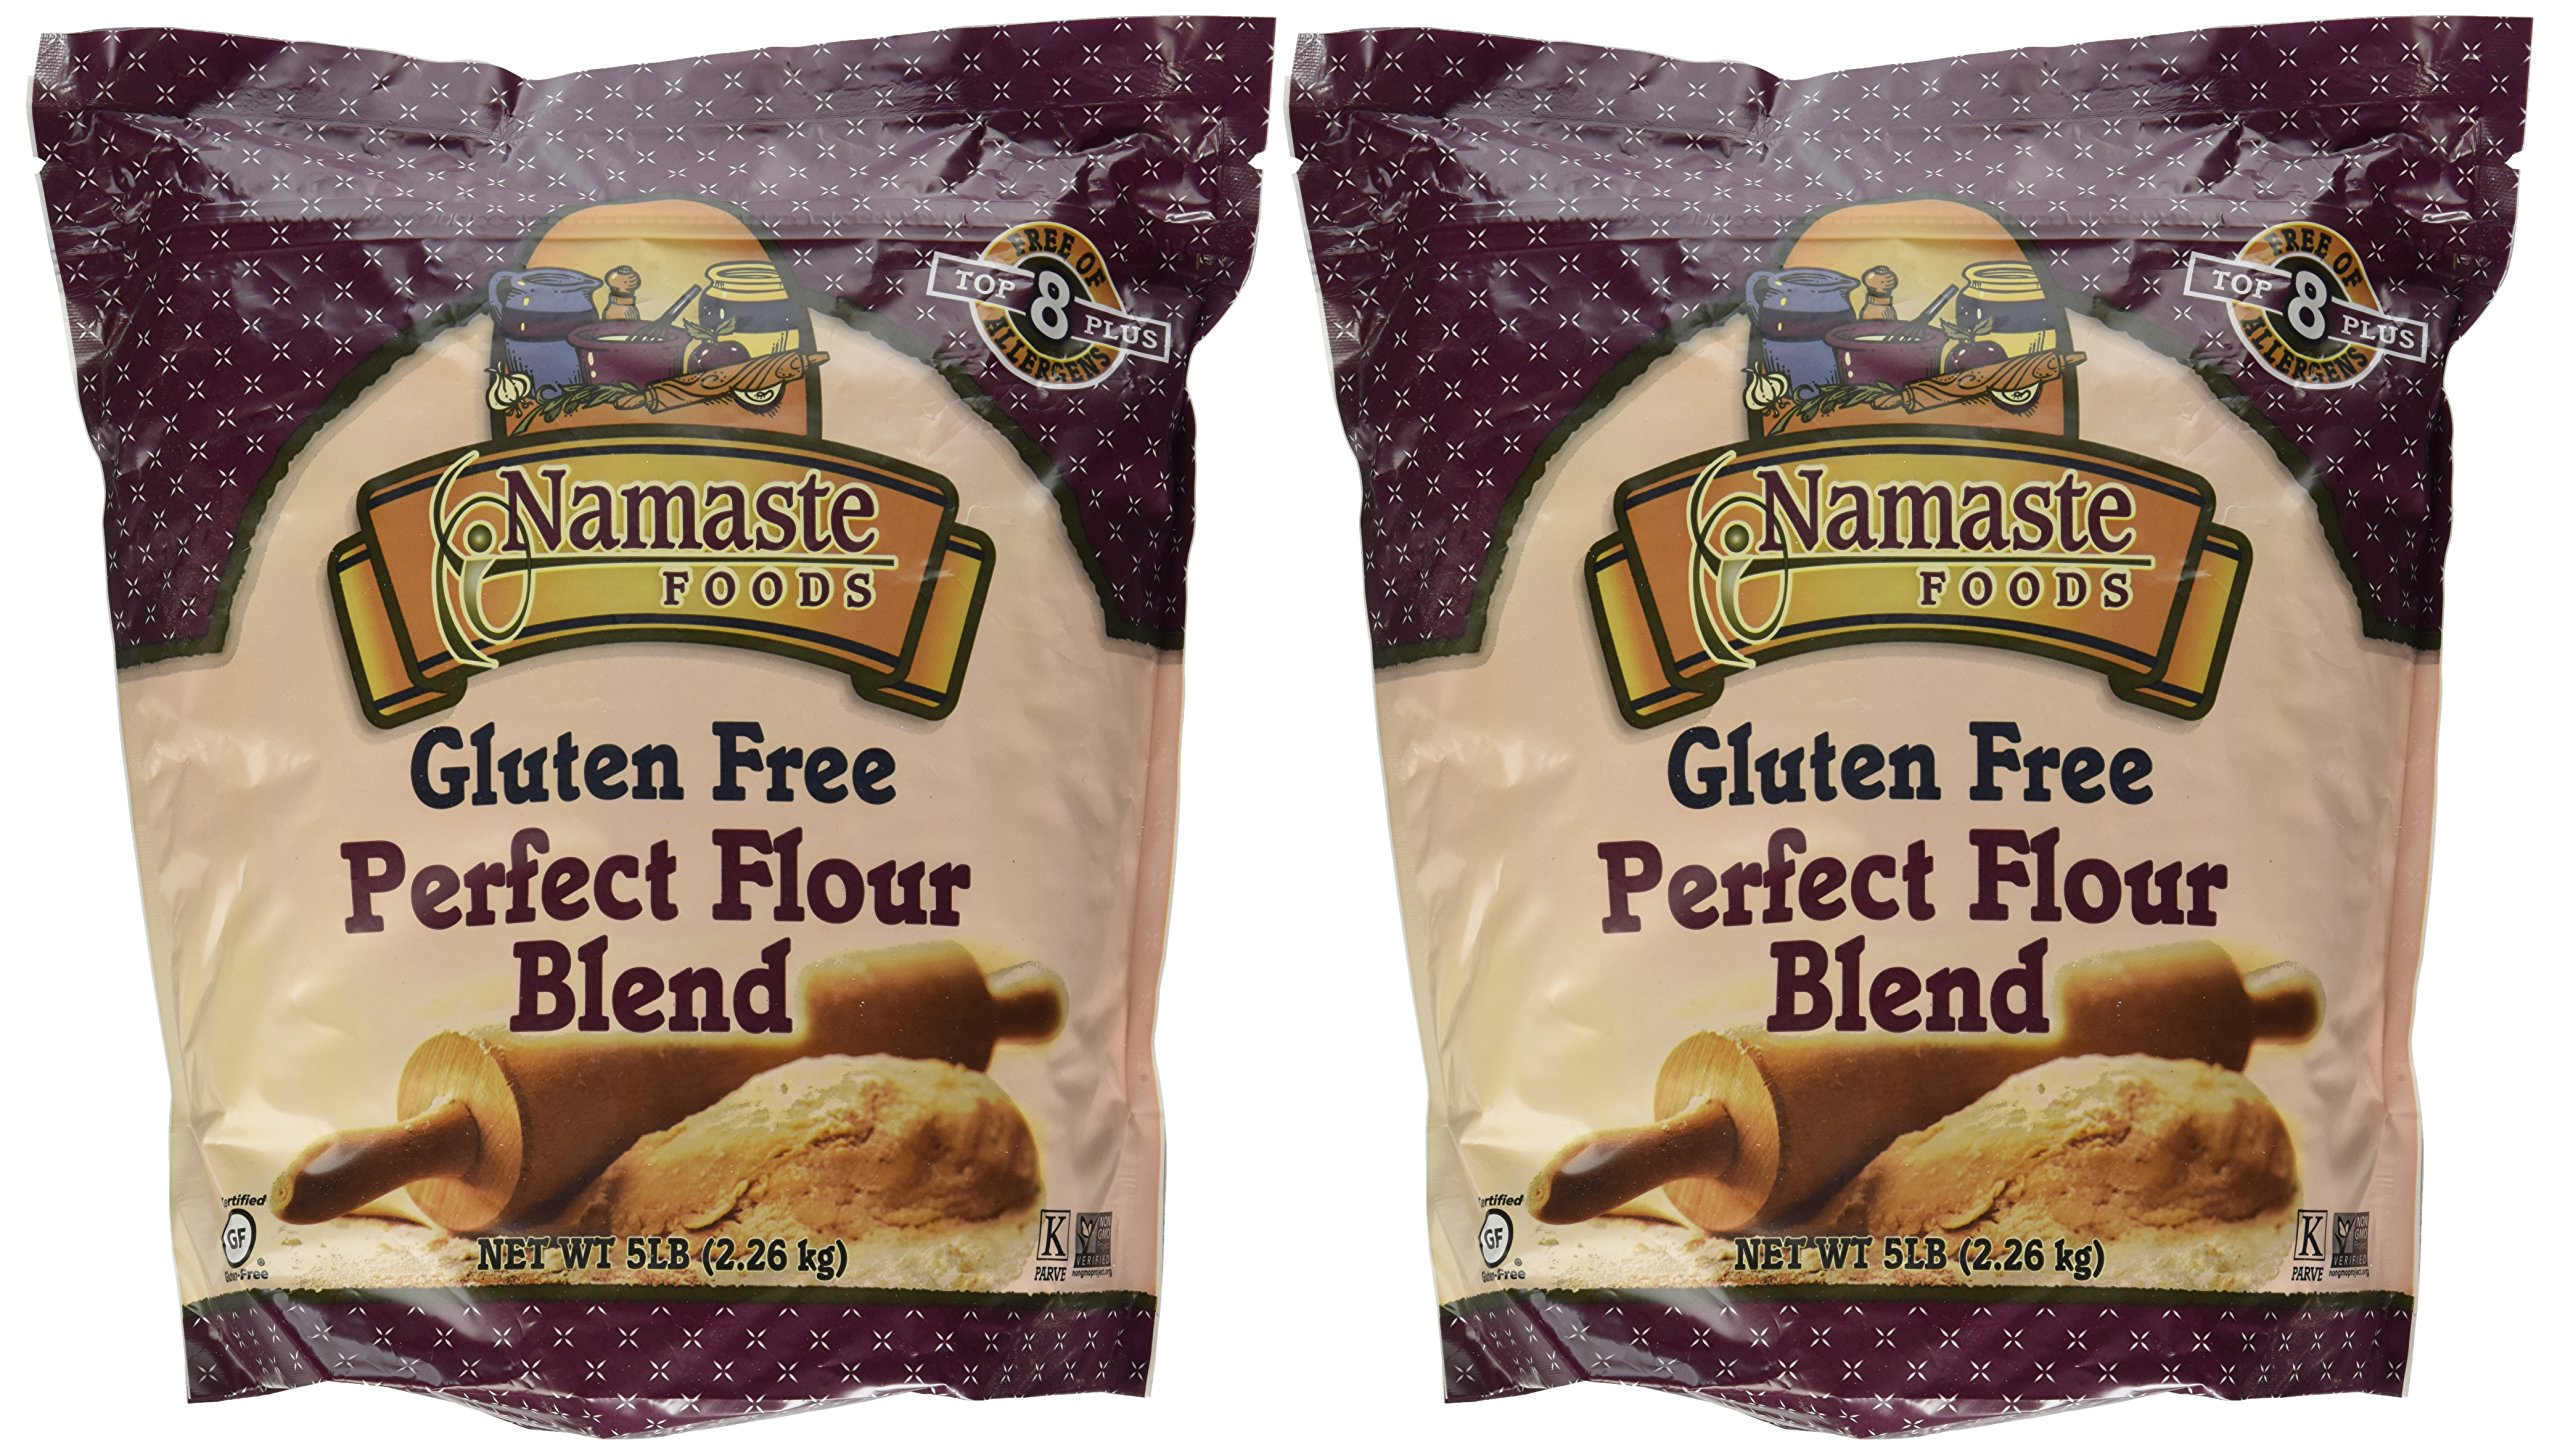 Namaste Foods Gluten Free PERFECT FLOUR Blend 5LB (2 Pack) by Namaste Foods